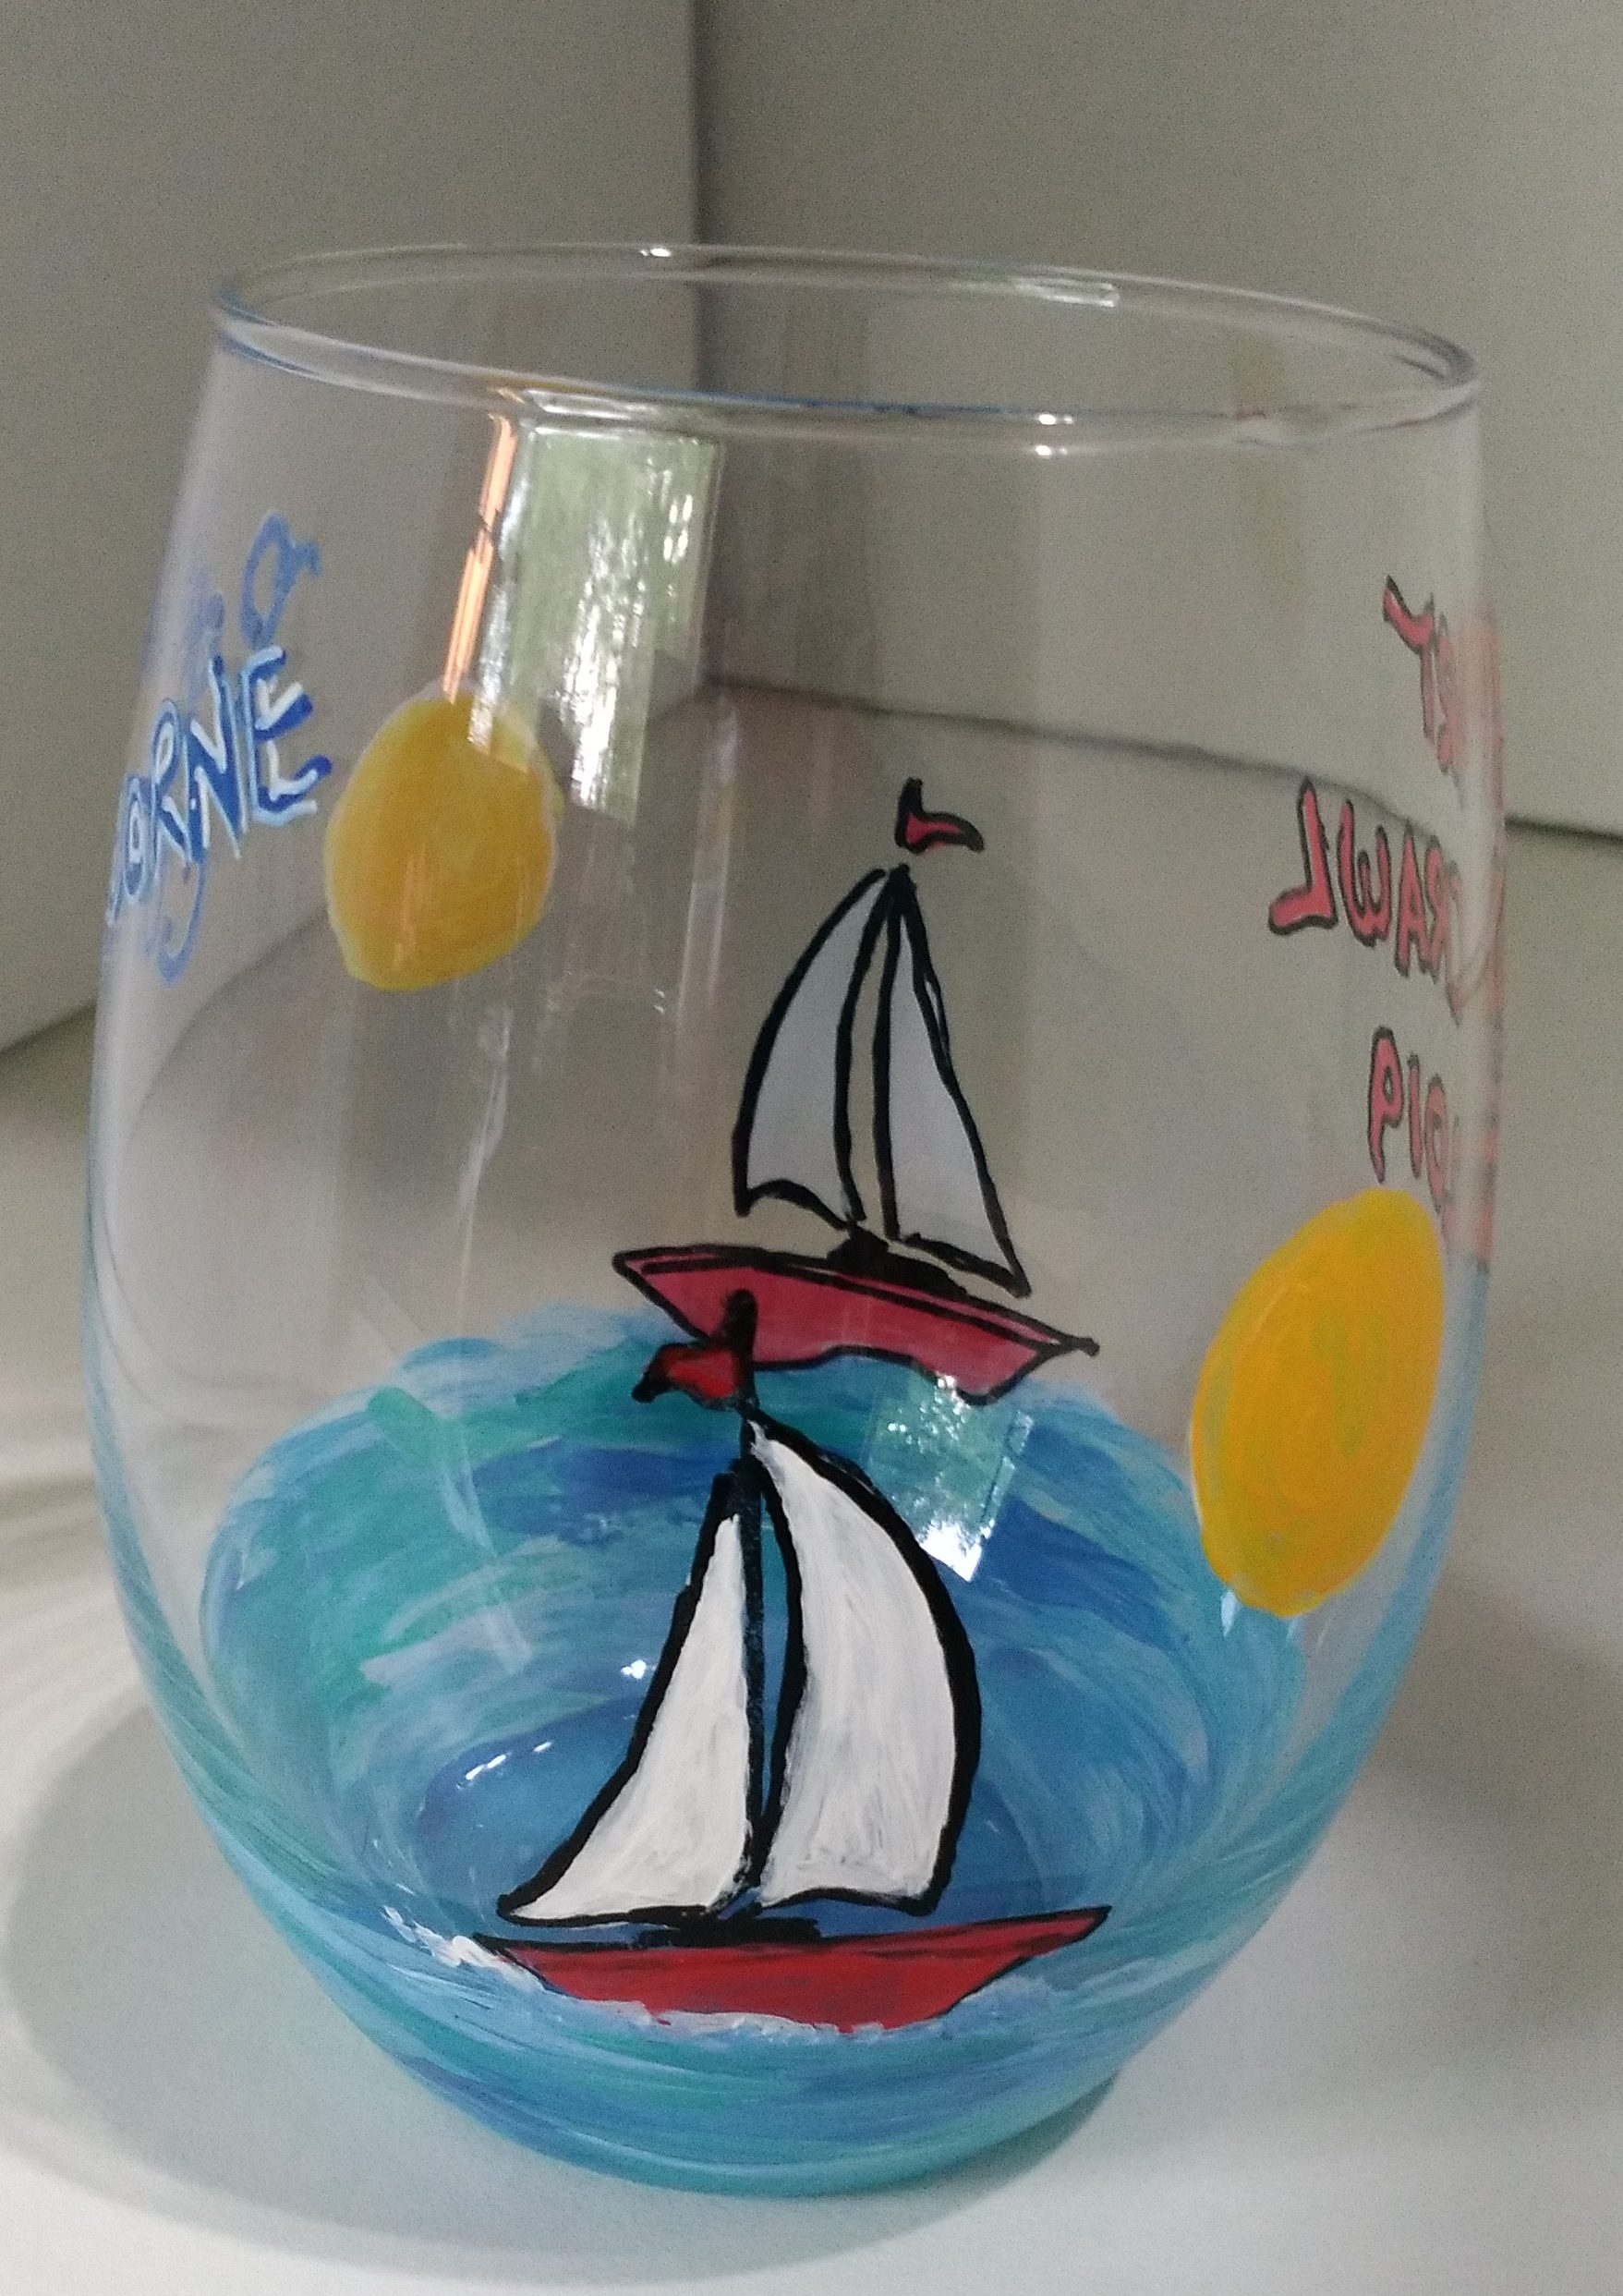 wine-glass-sailboat-painting-malowany